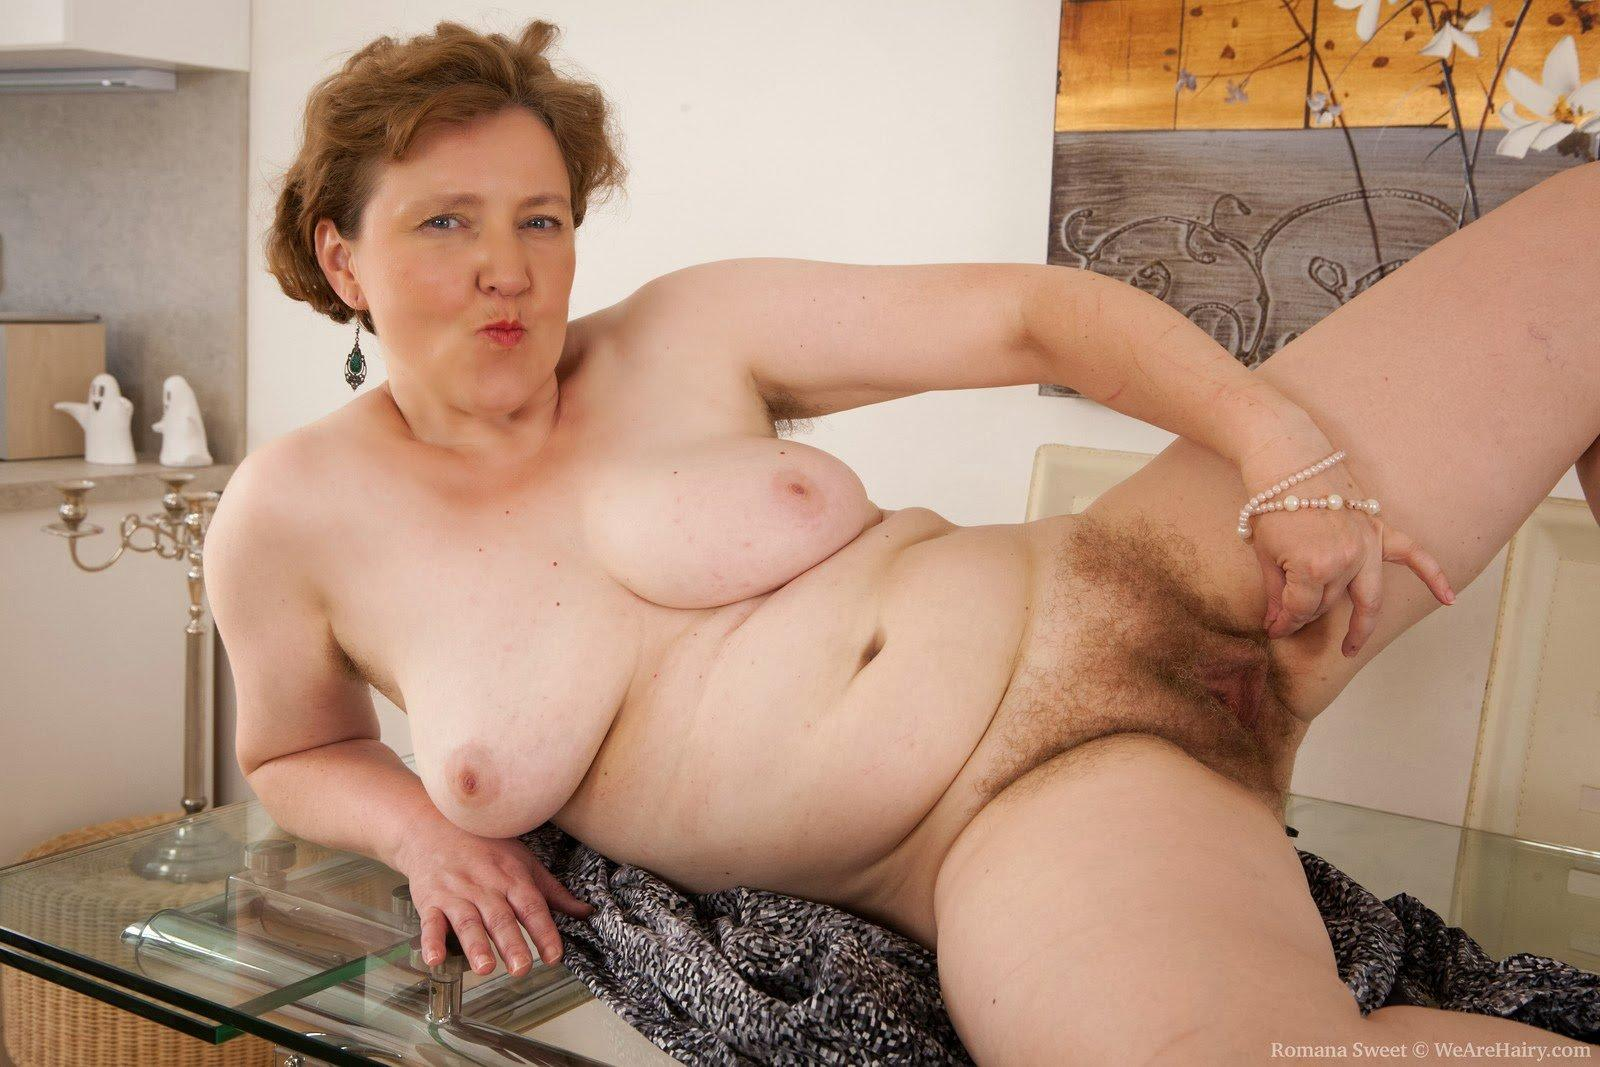 hairy mature women having sex